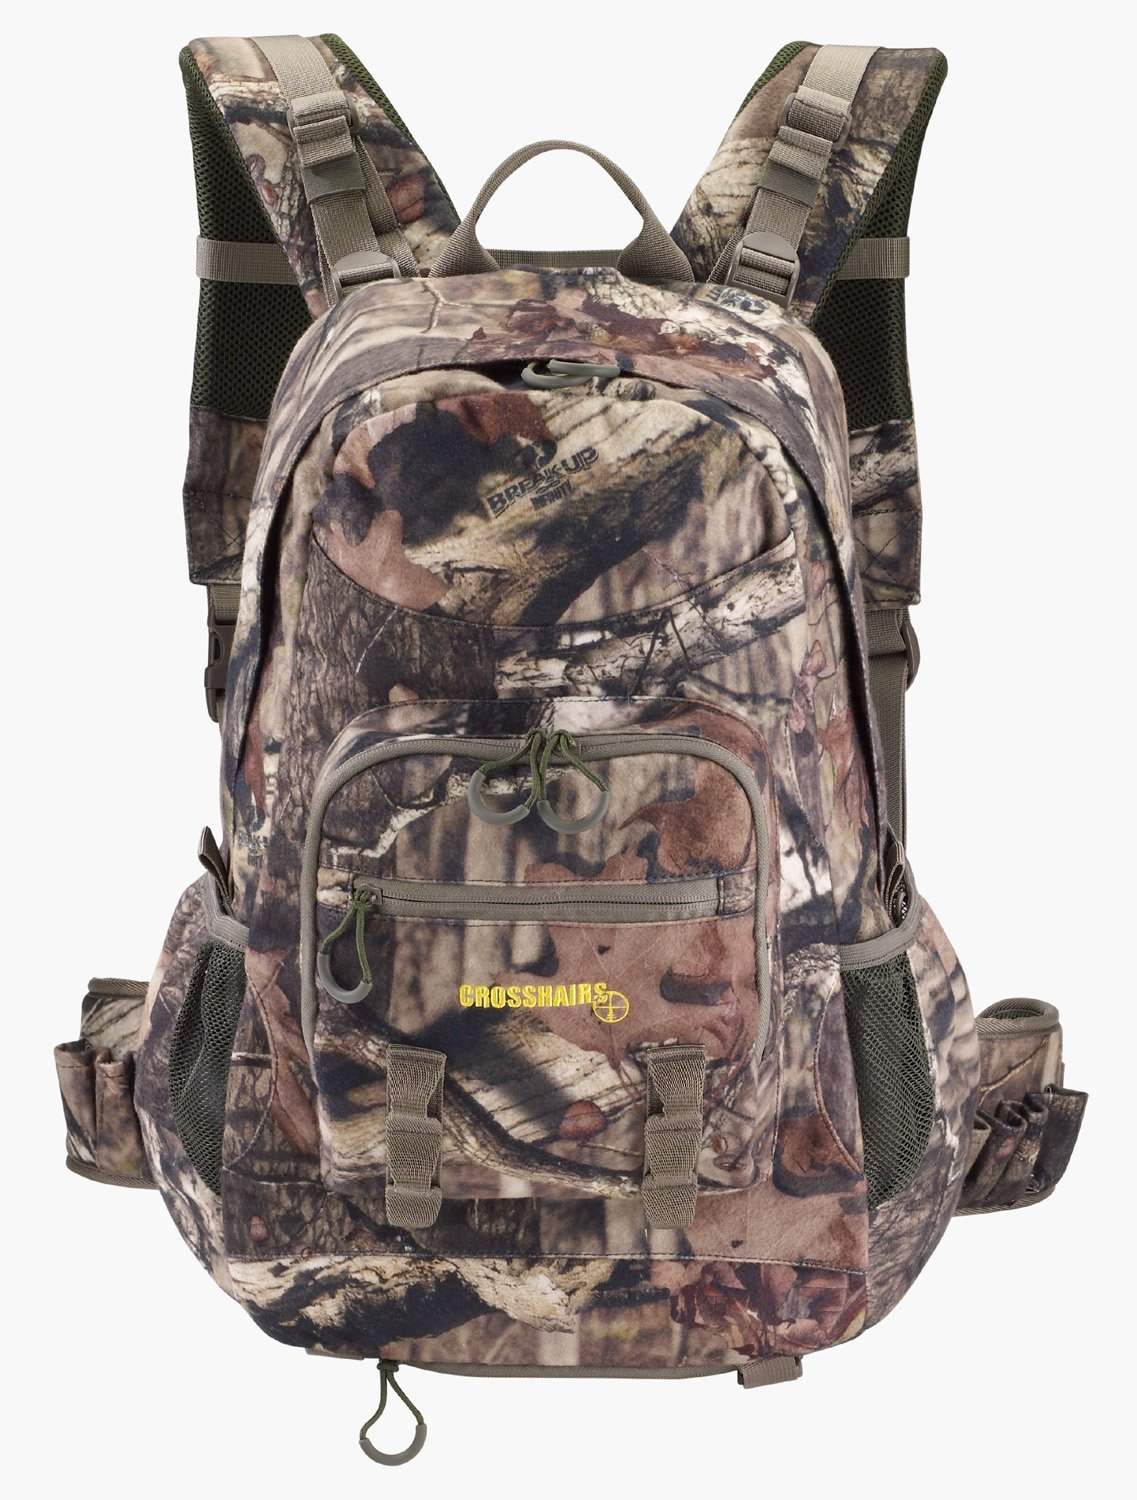 Lewis N Clark Crosshairs Break-Up Infinity Hydro Rifle Day Pack, Mossy Oak by Lewis N. Clark (Image #1)